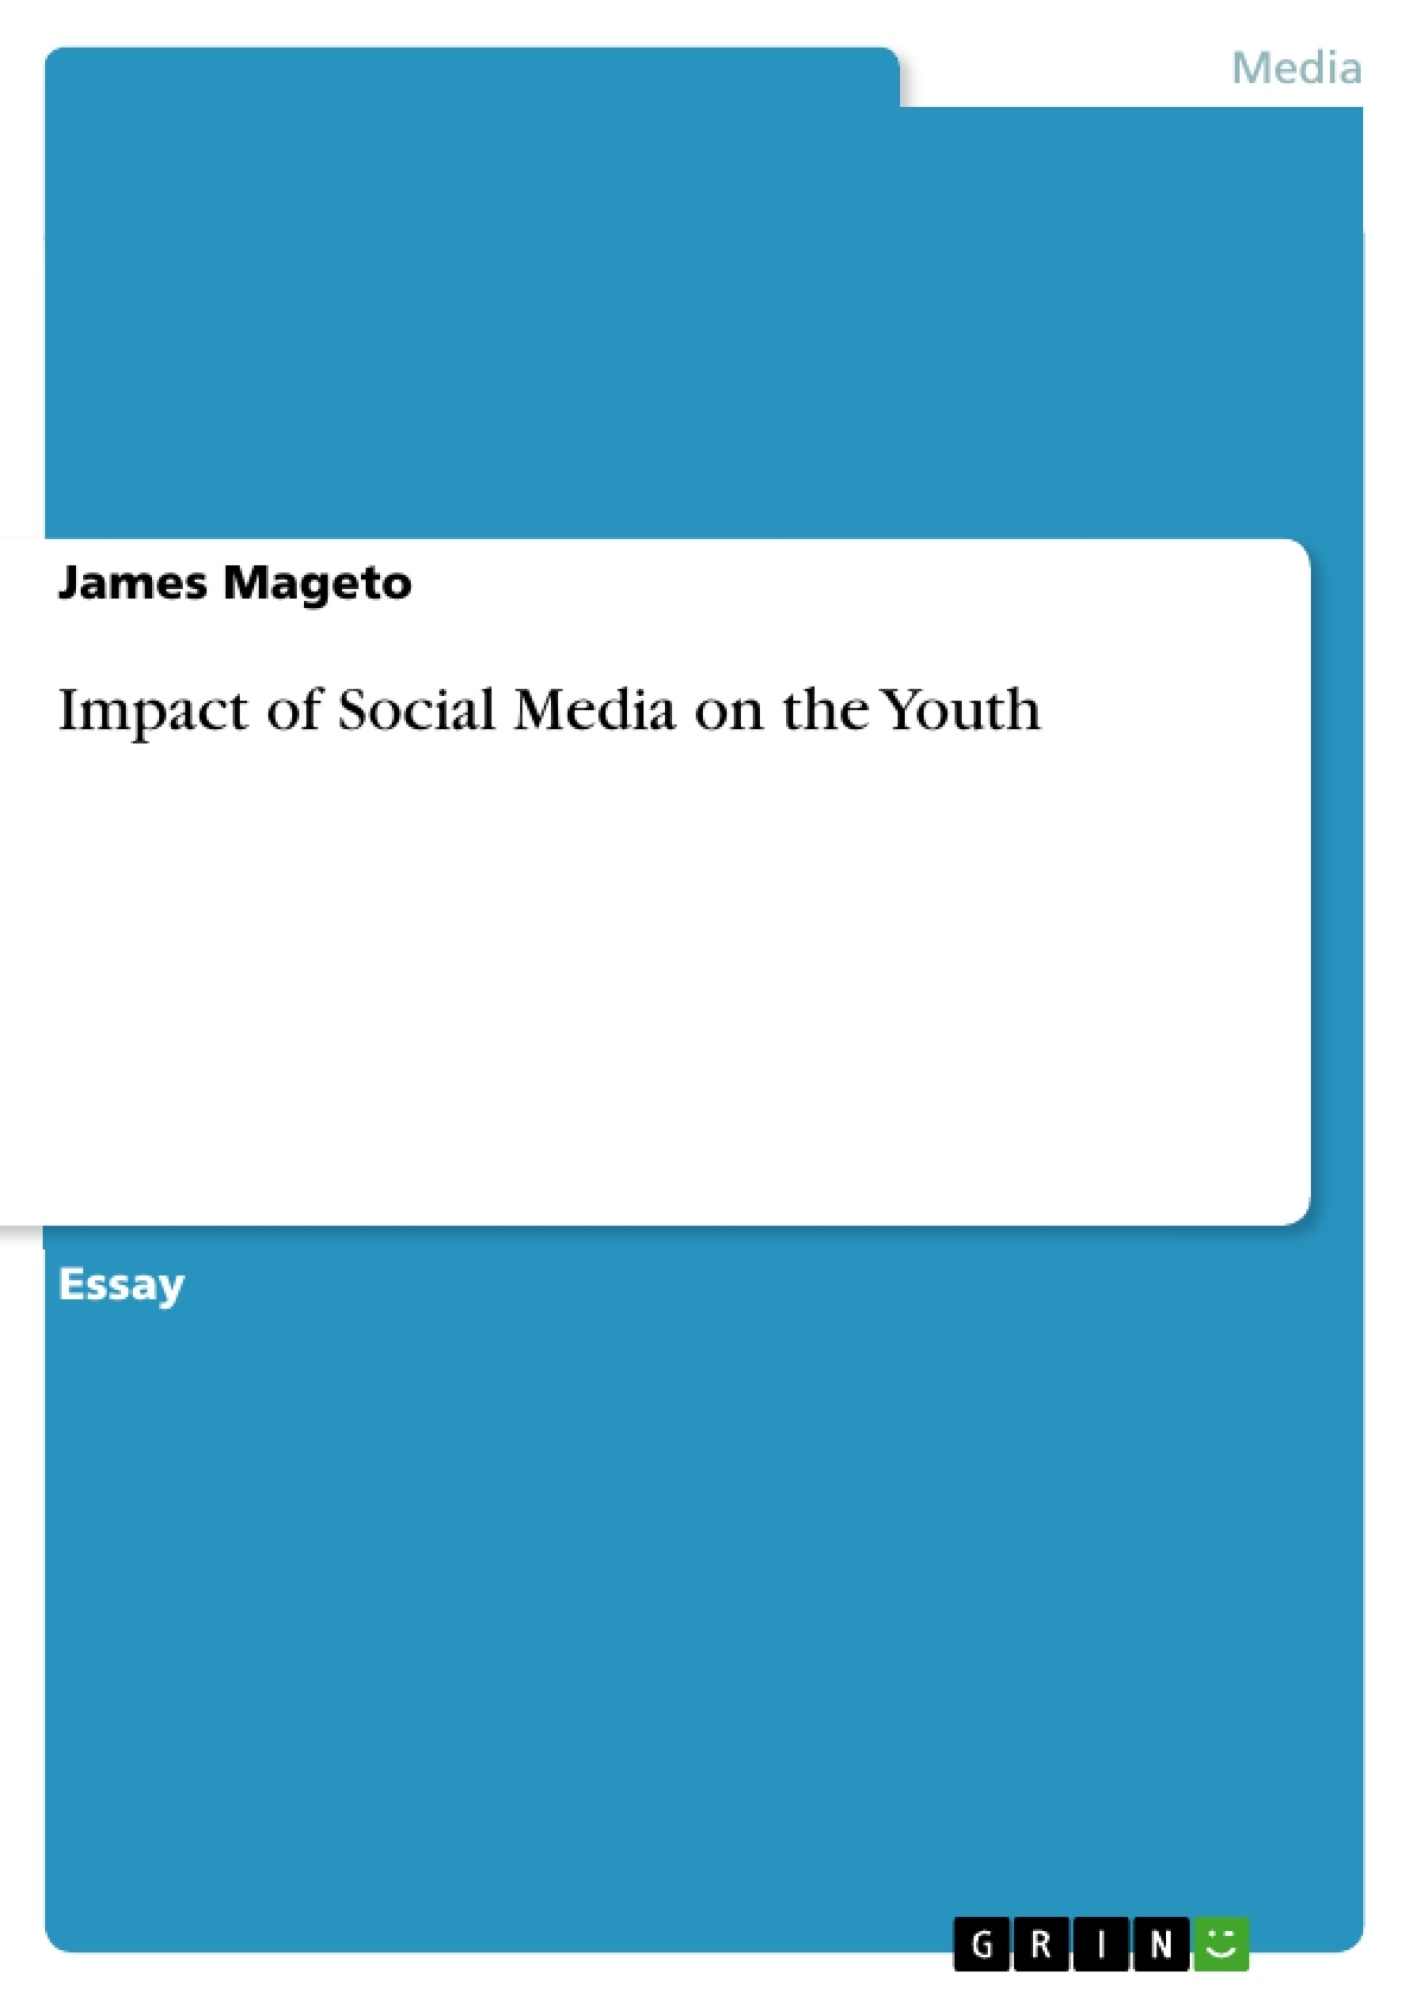 020 Research Paper Conclusion For About Social Media 358350 0 Awful Full